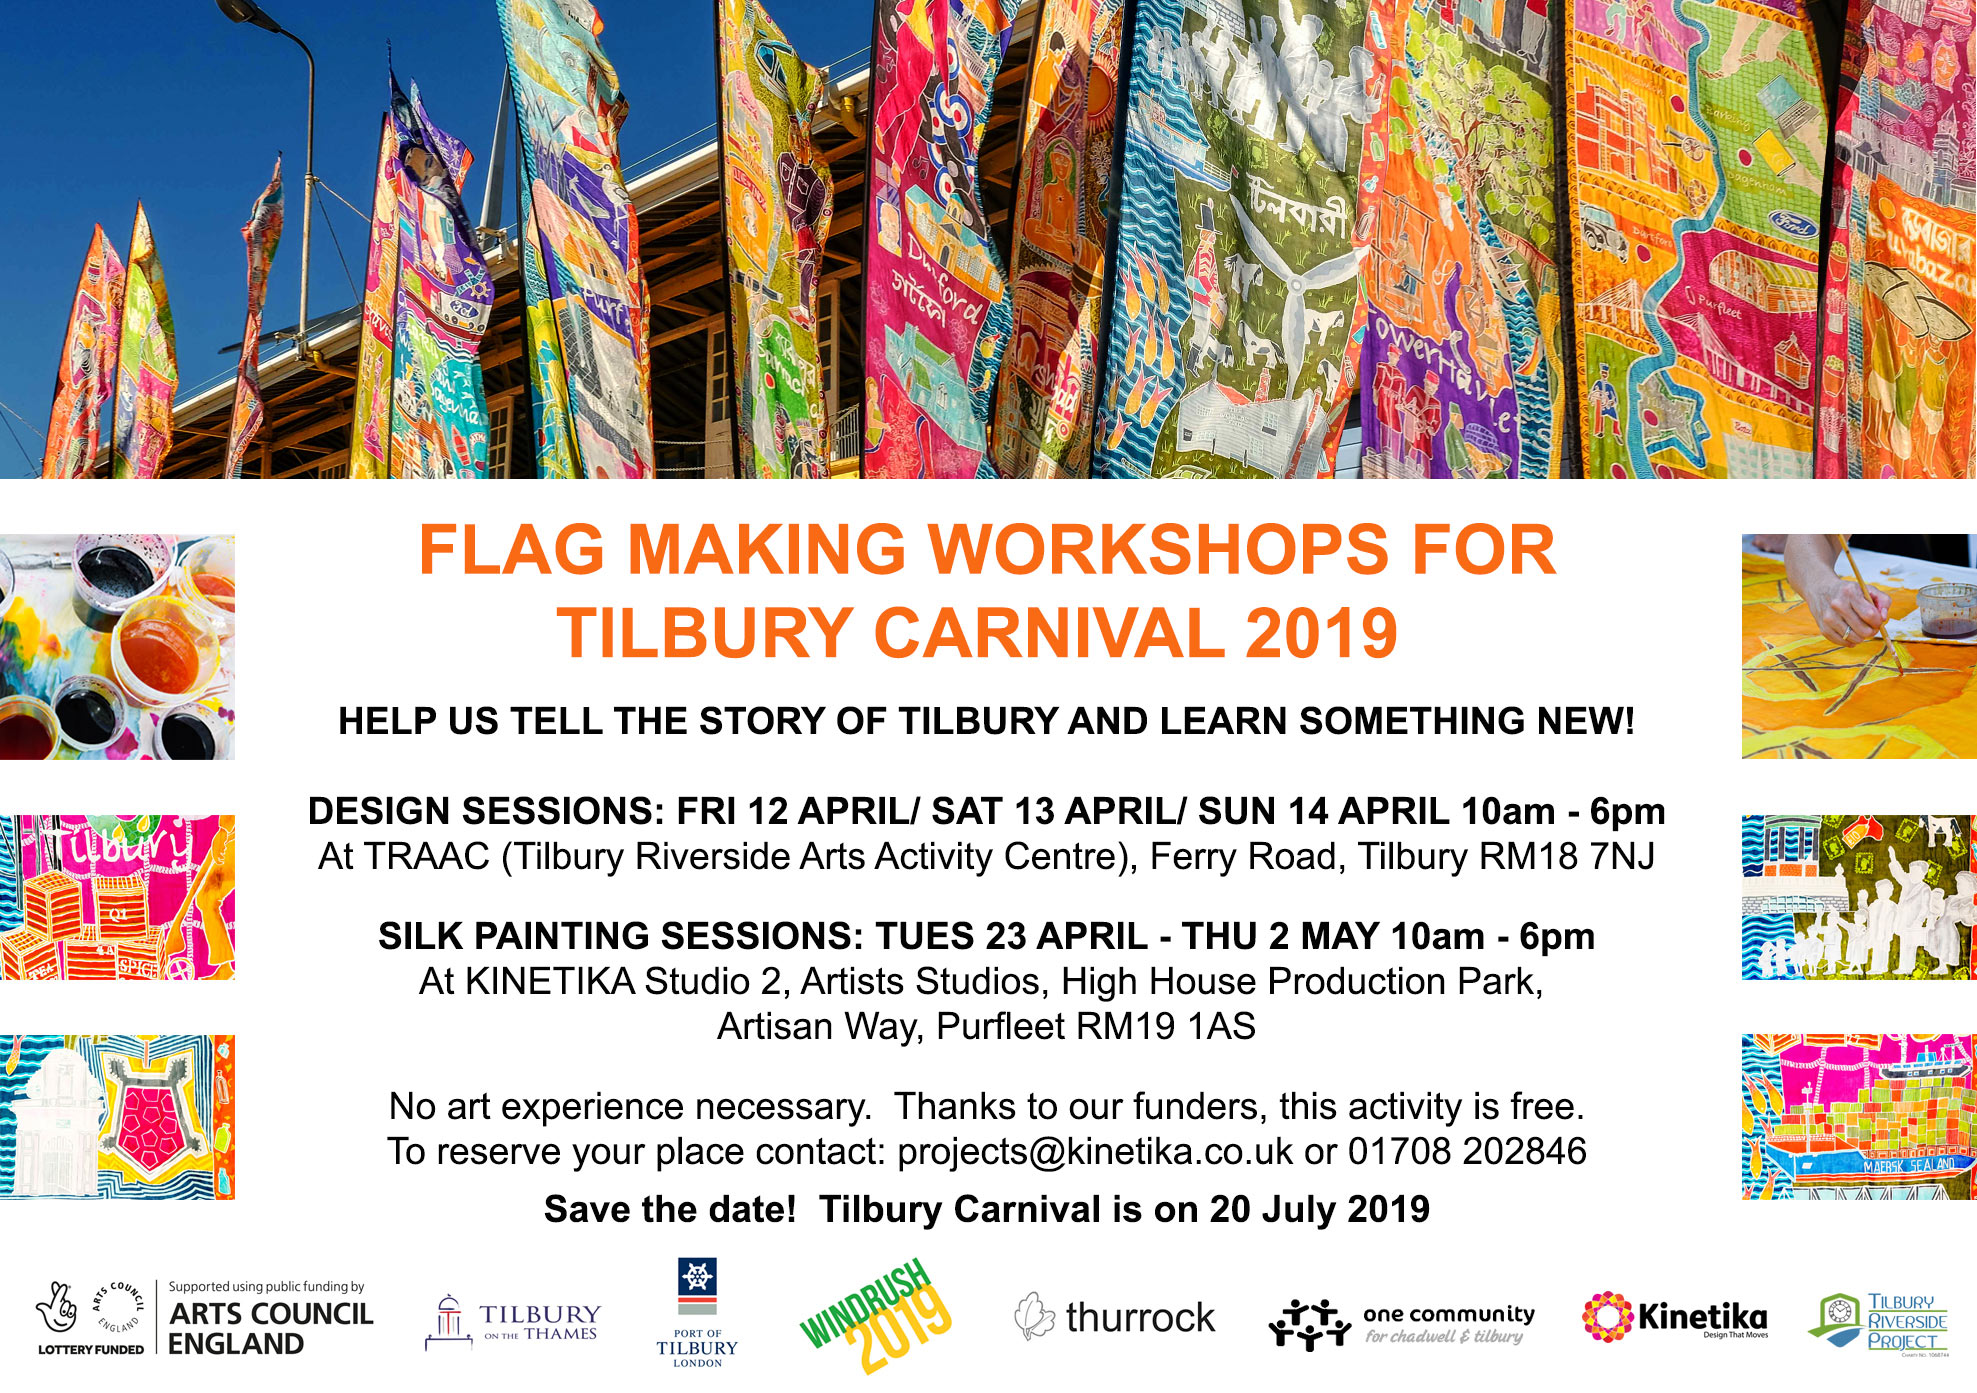 Tilbury Carnival 2019 – Flag Making Workshops